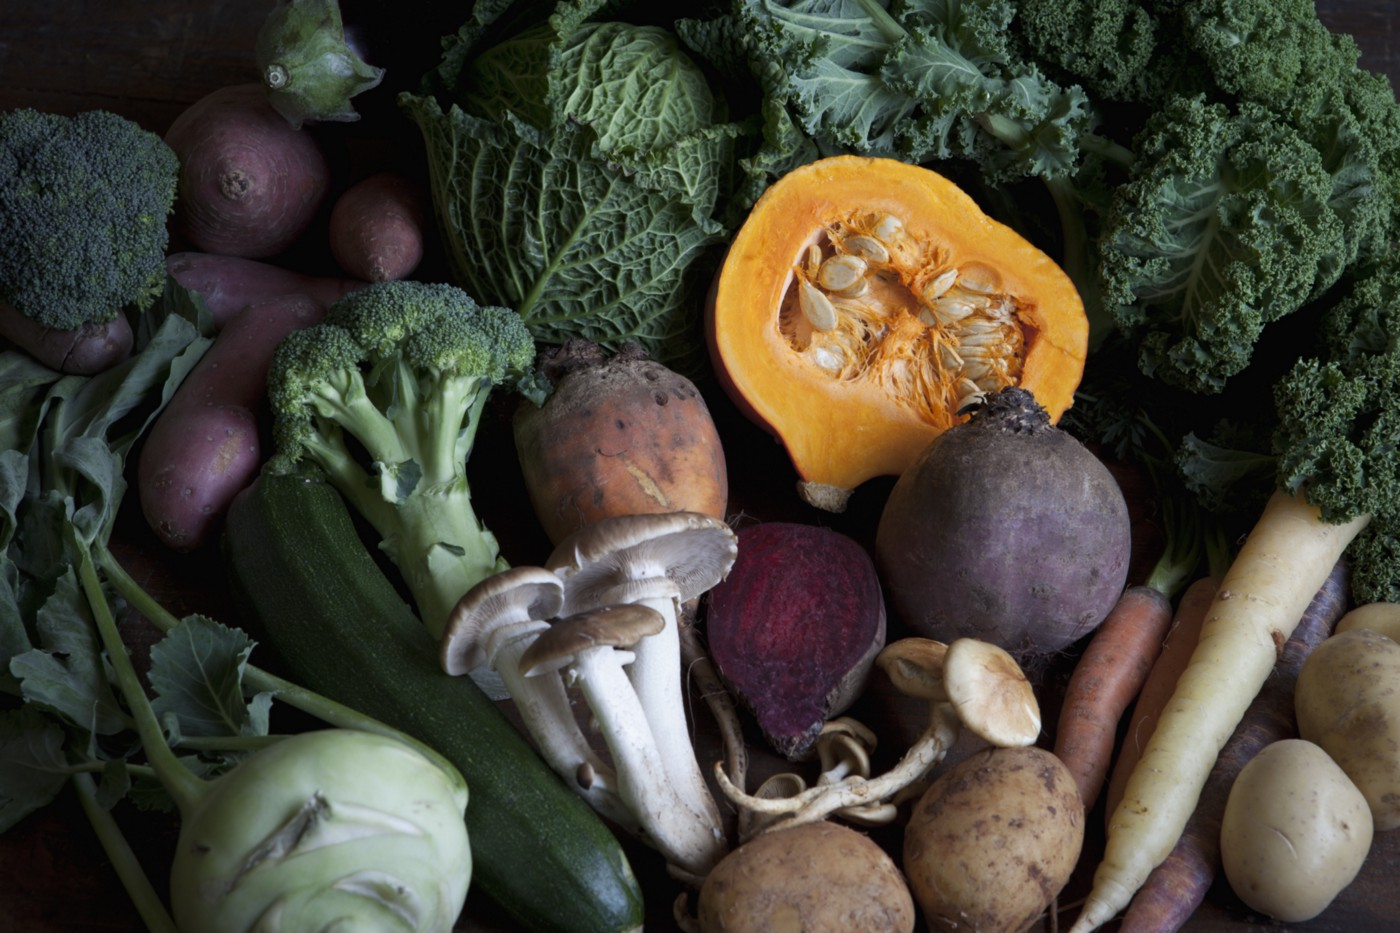 A bounty of fall vegetables like broccoli, parsnips, potatoes, mushrooms, and squash.